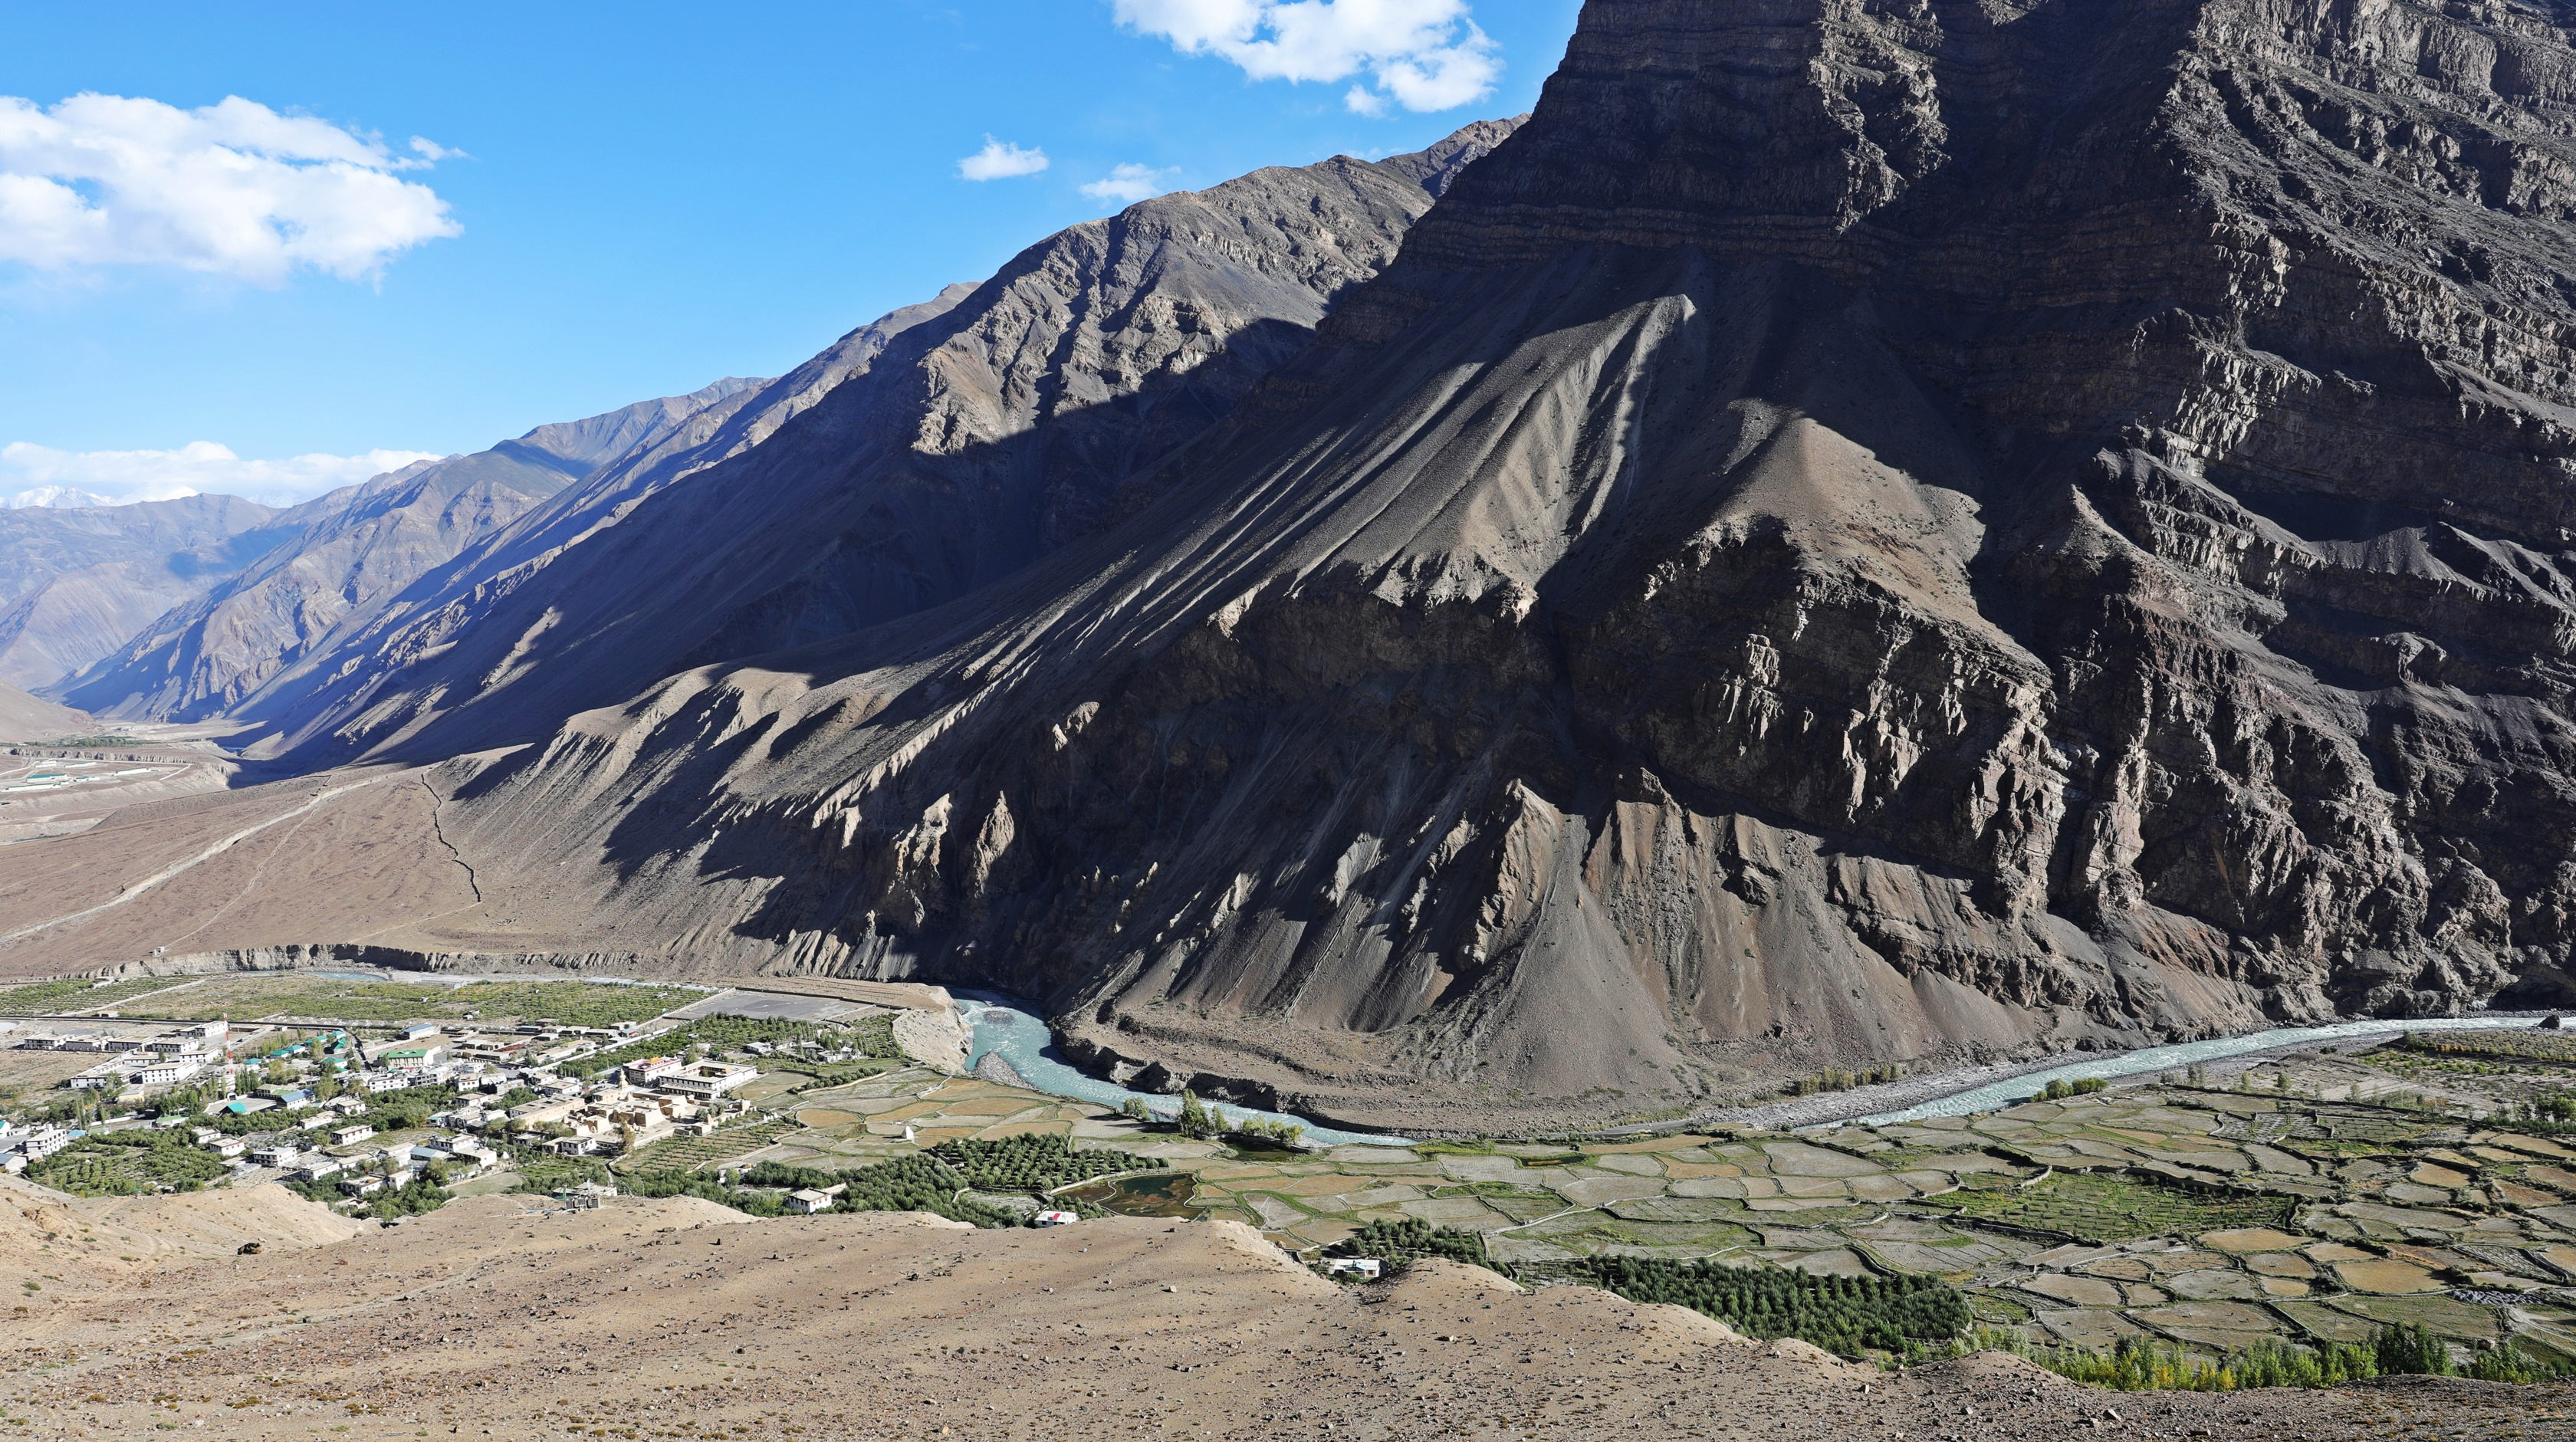 Spiti Valley and the town of Tabo